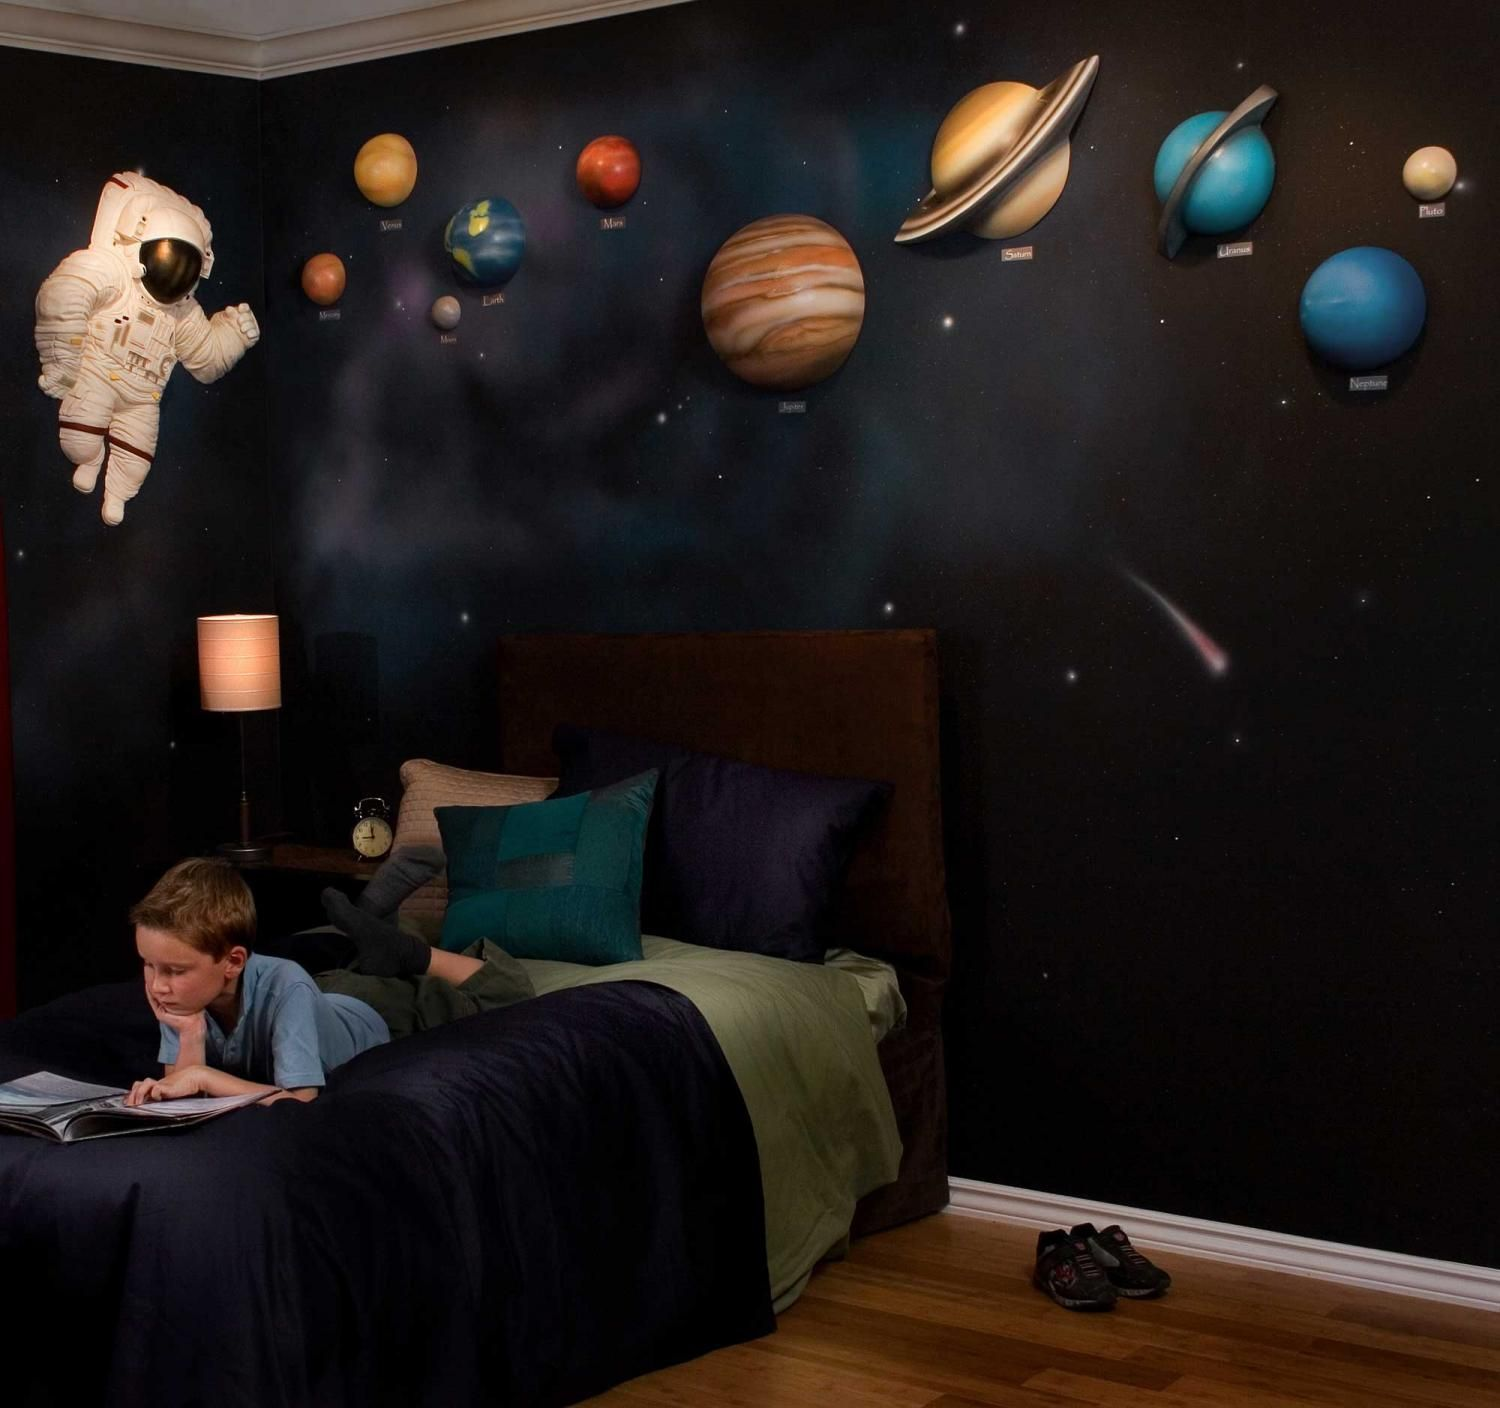 Solar system with space astronaut 3d wall art decor by for 3d wall designs bedroom